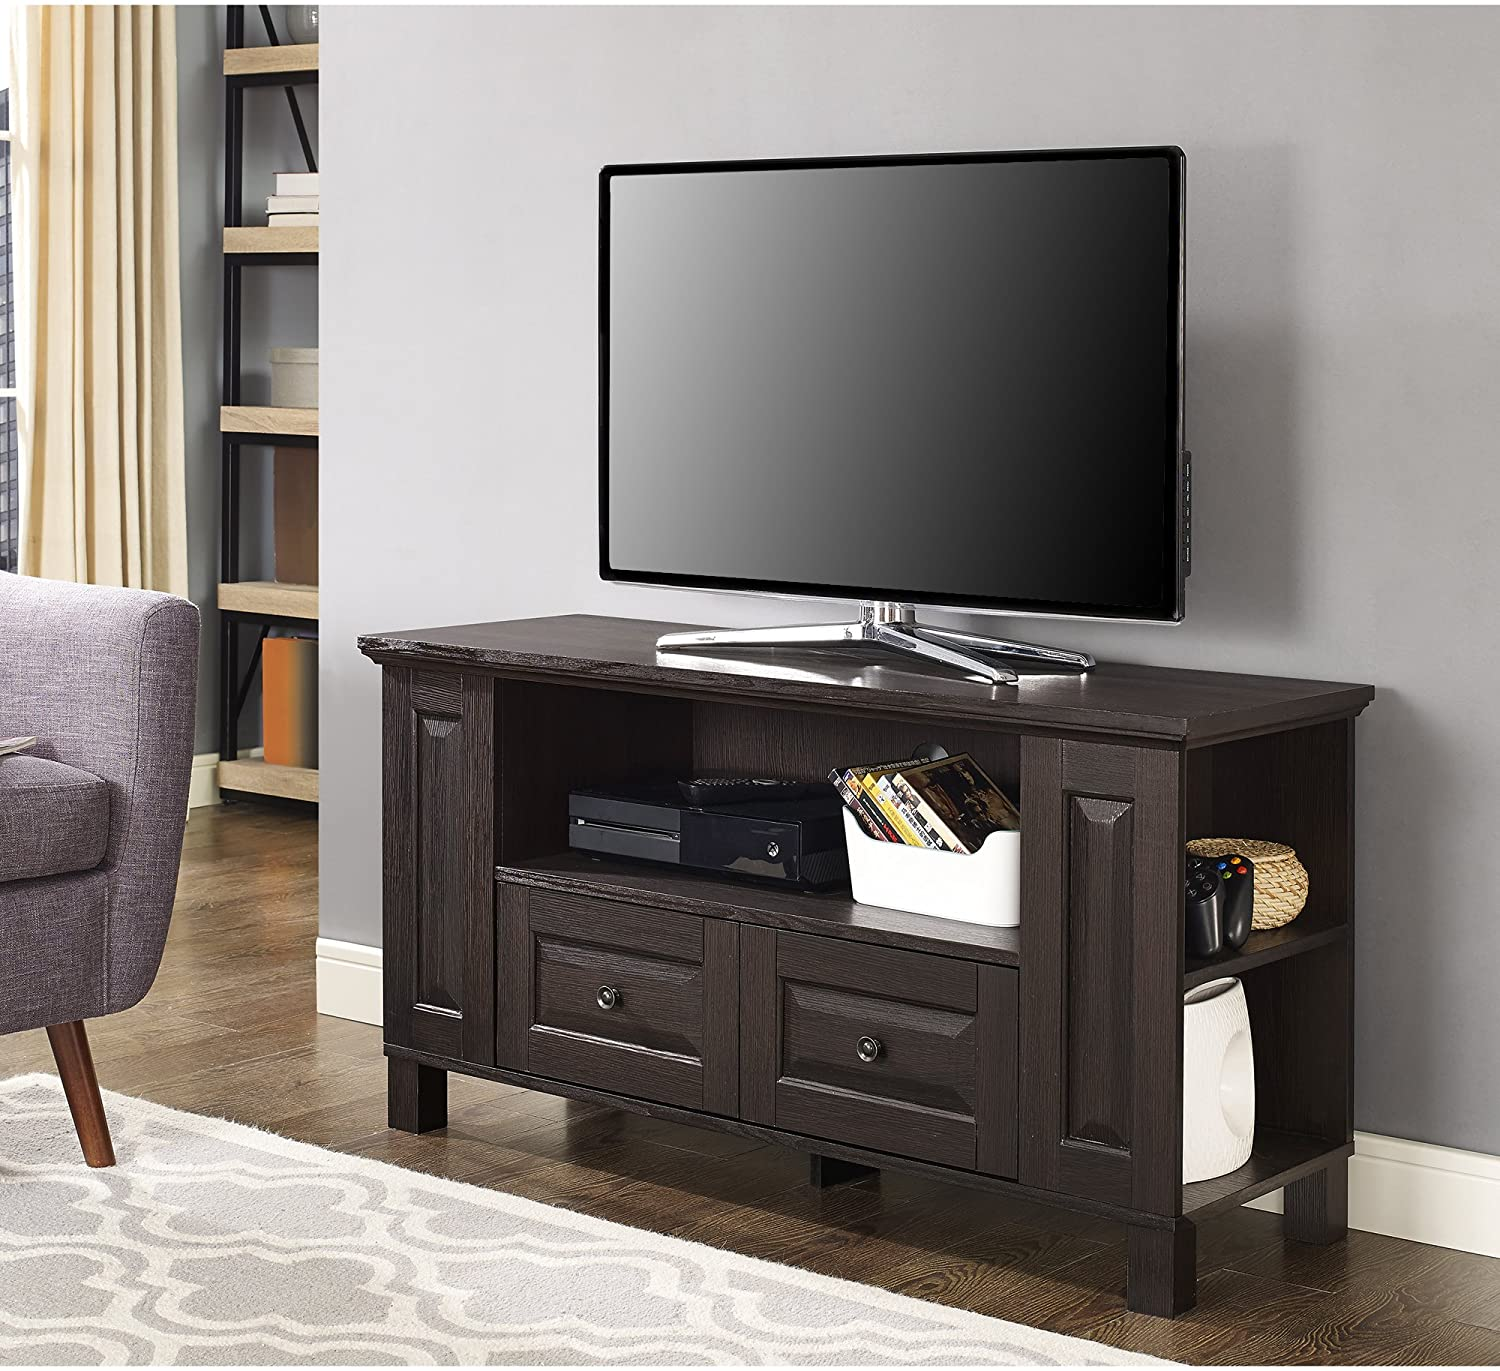 Walker Edison Furniture Company Traditional Wood Universal Stand with Storage Drawers for TV's up to 50